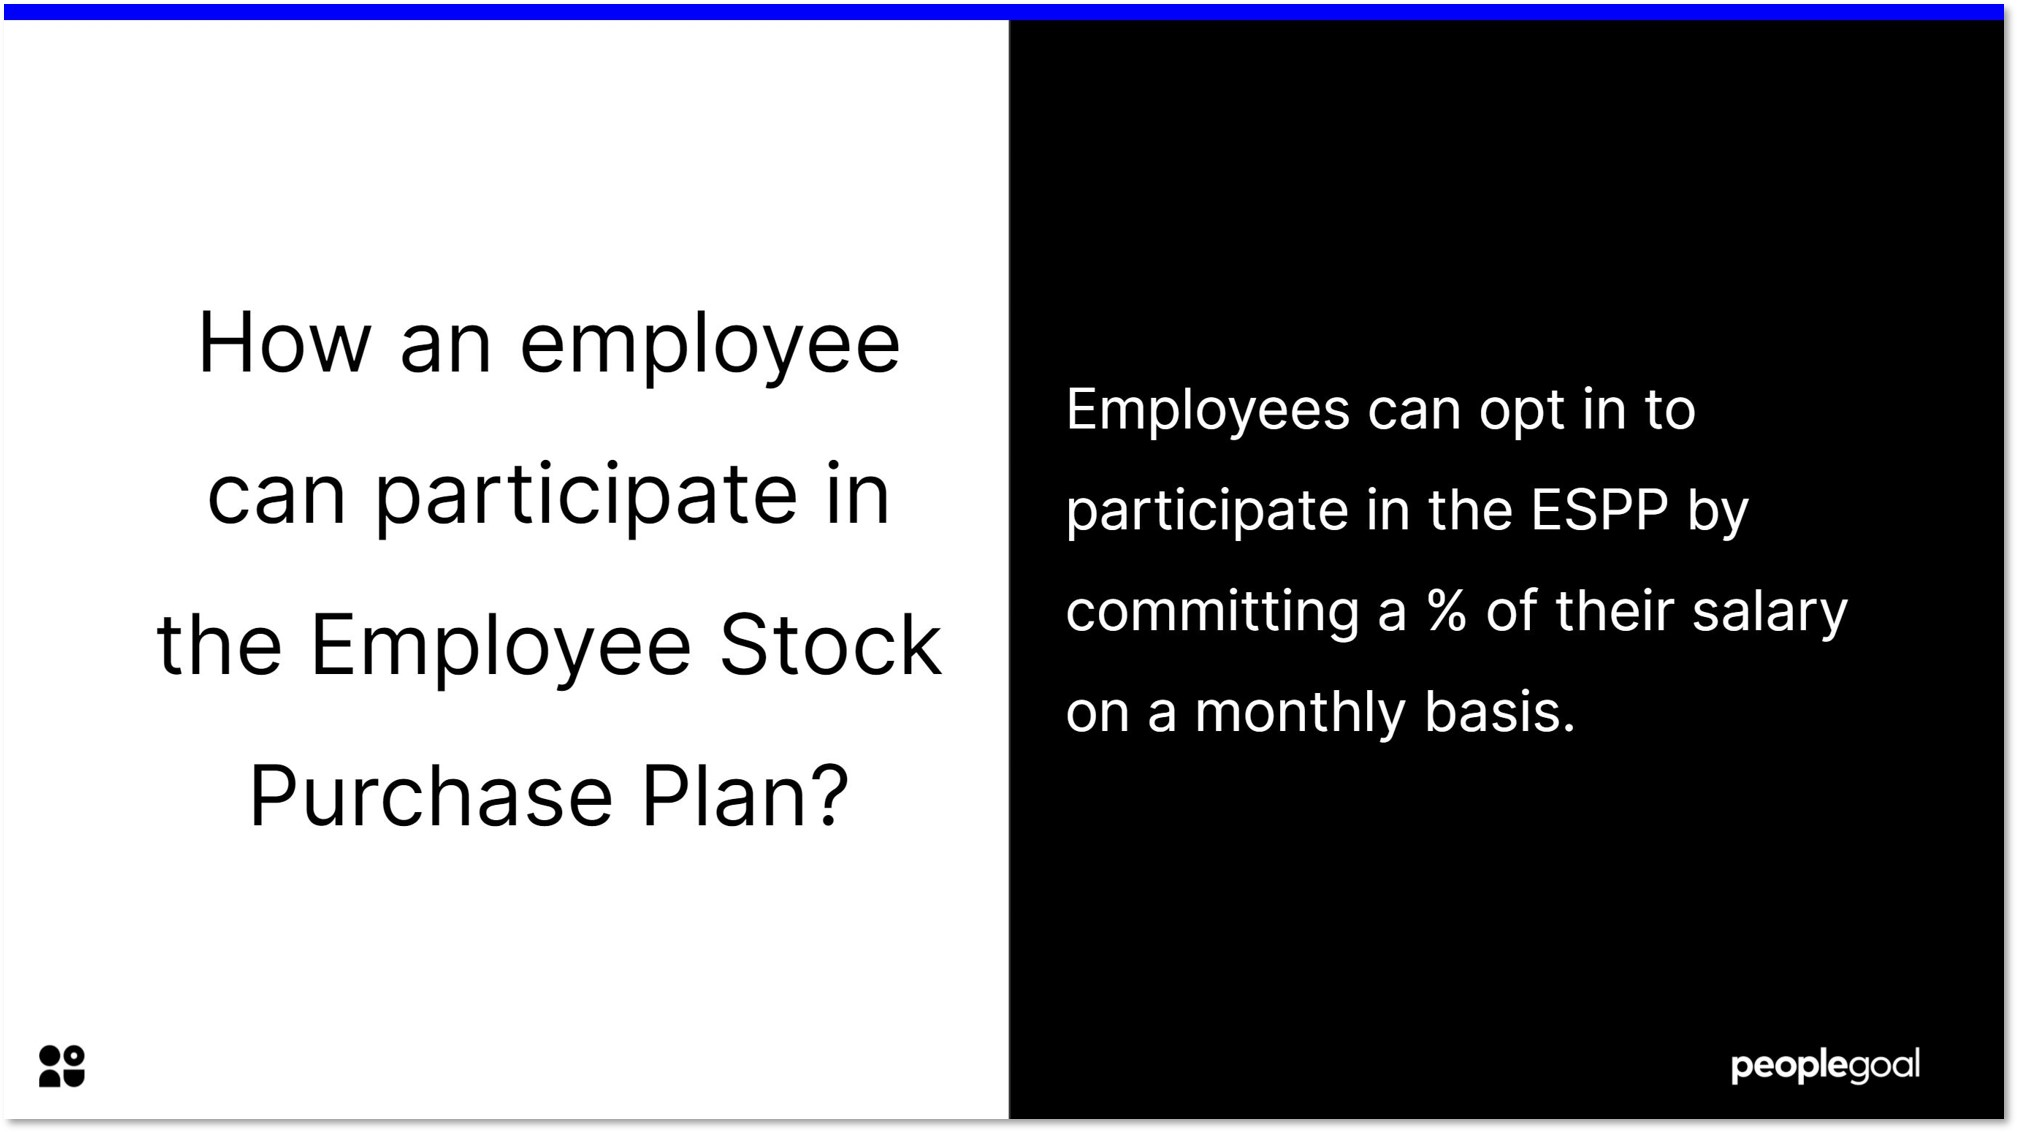 How an employee can participate in the employee stock purchase plan